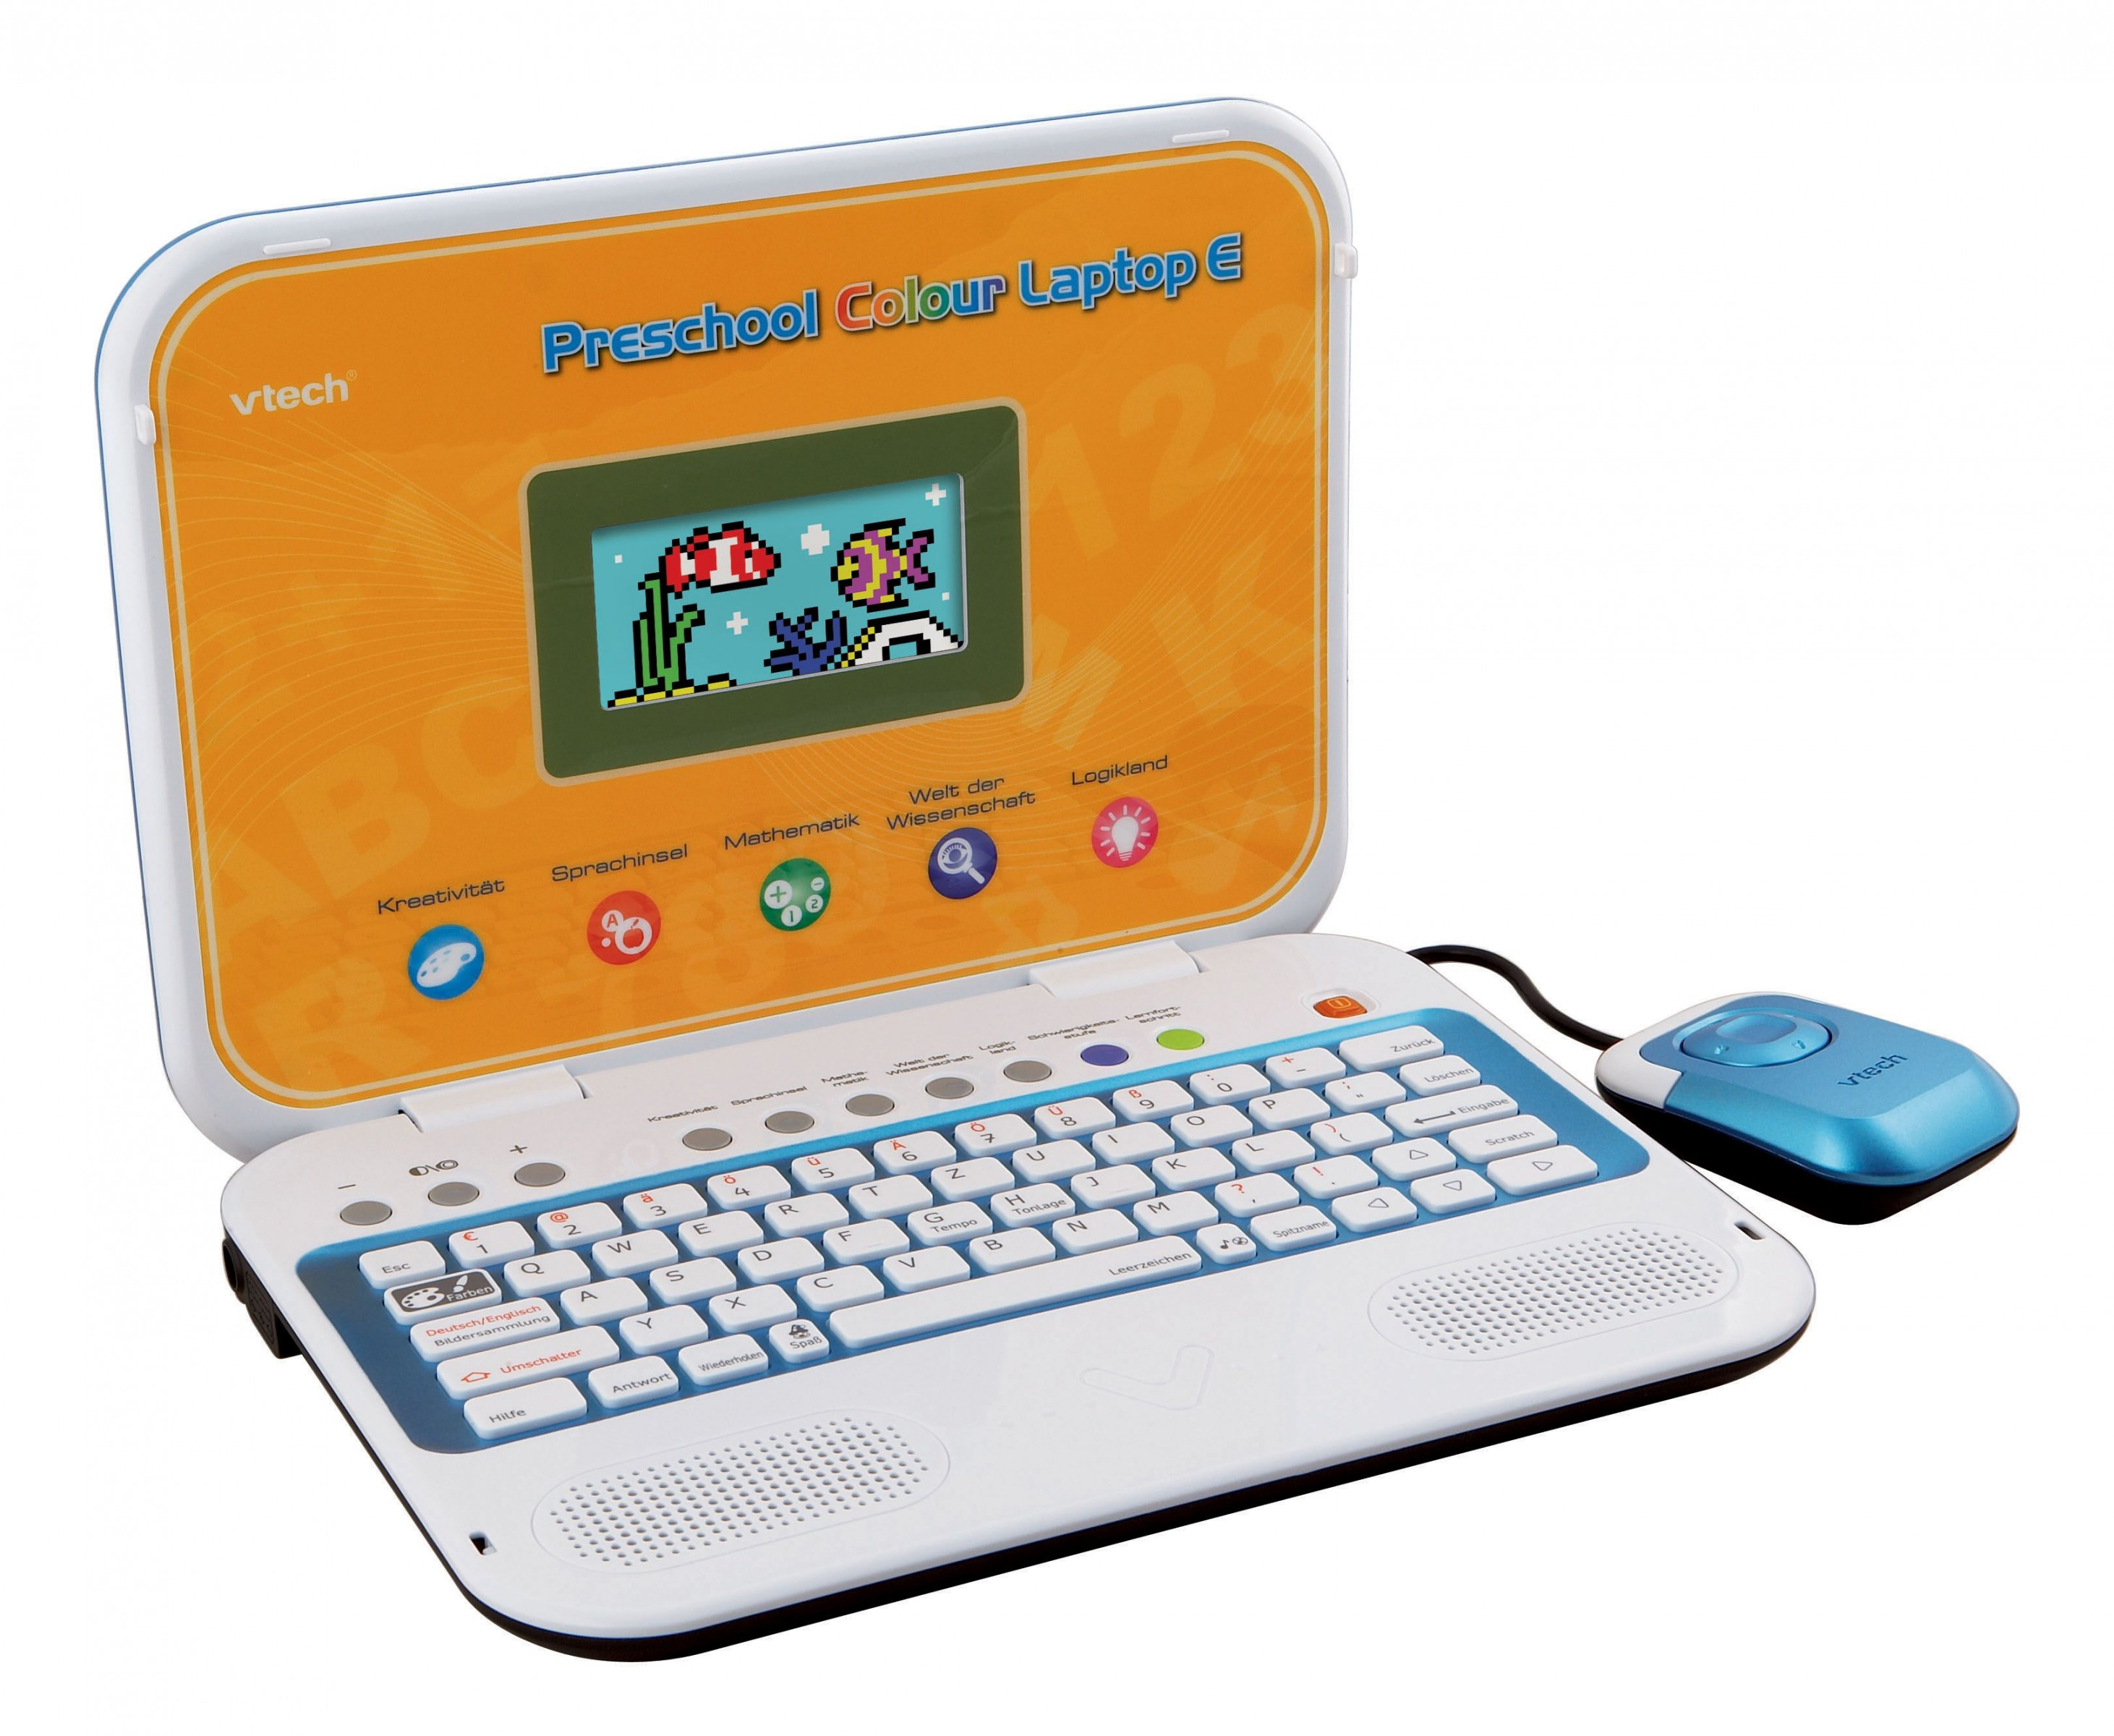 VTech Preschool Colour Laptop E